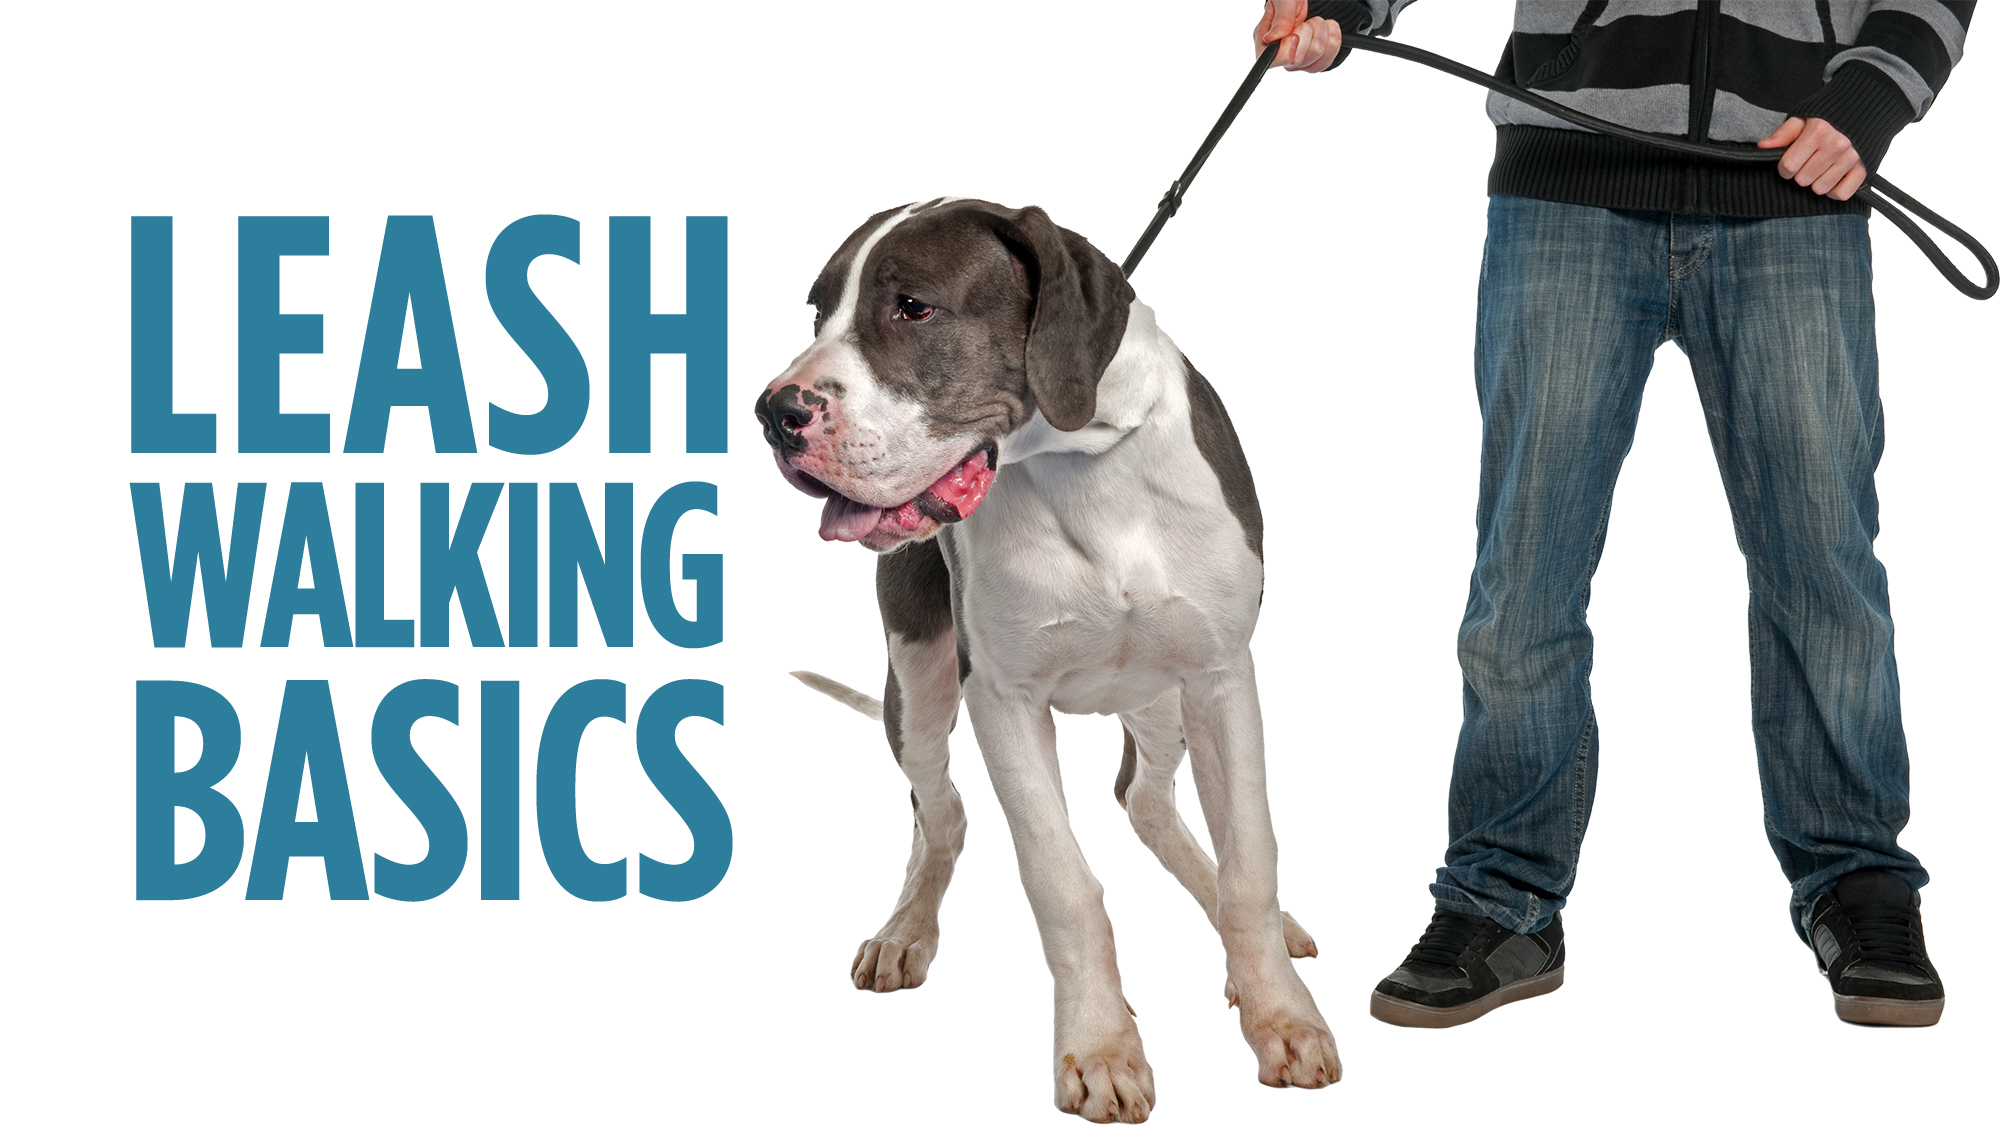 Leash Walking Basics